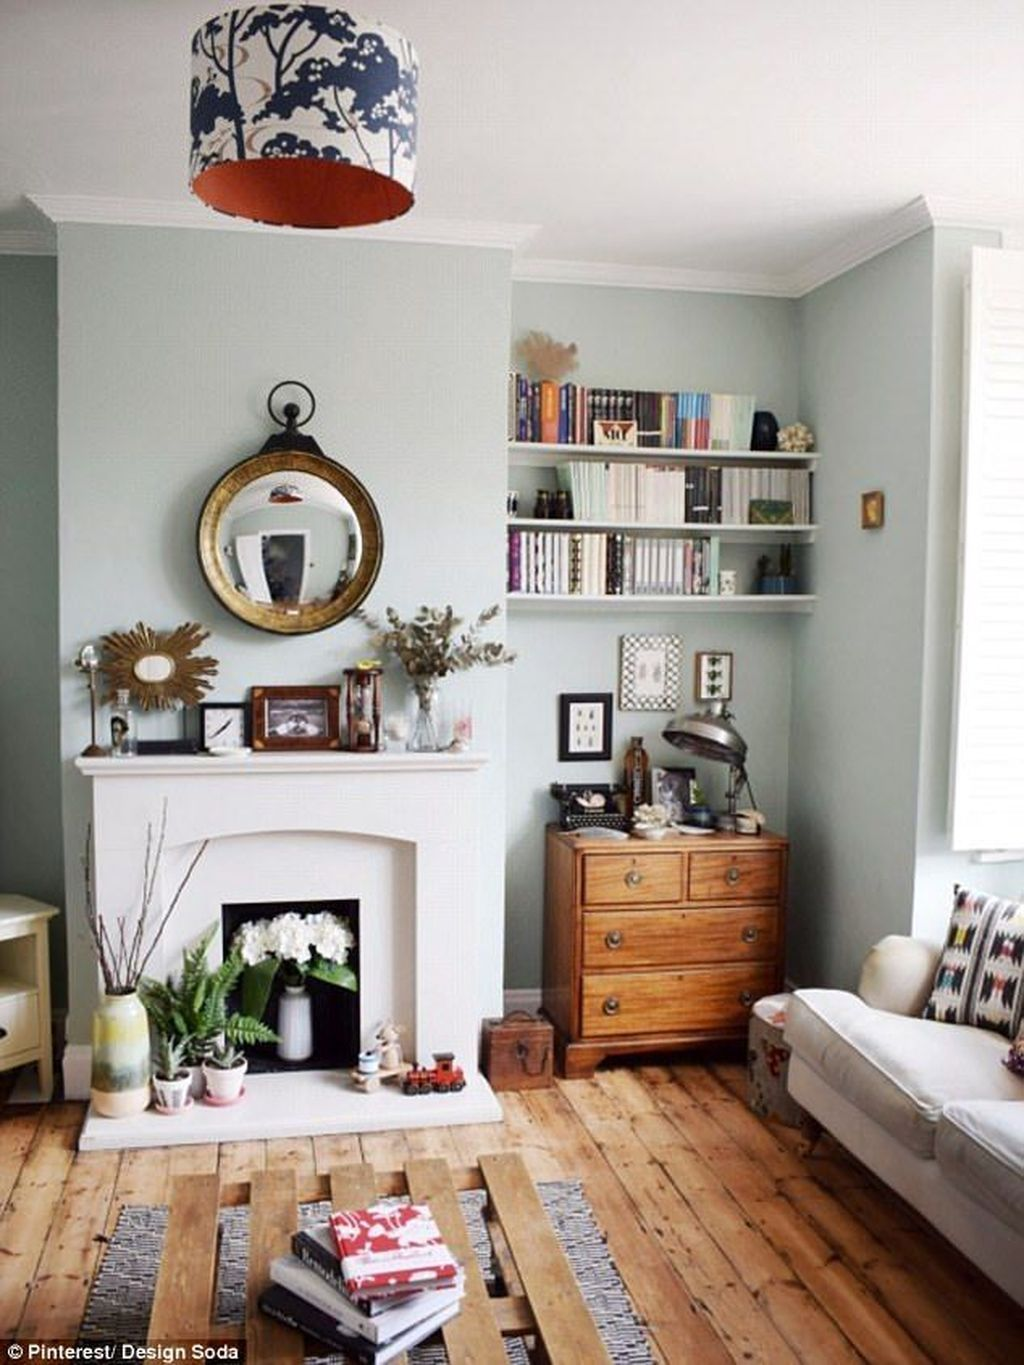 38 Adorable Interior Decoration Ideas For Living Room images